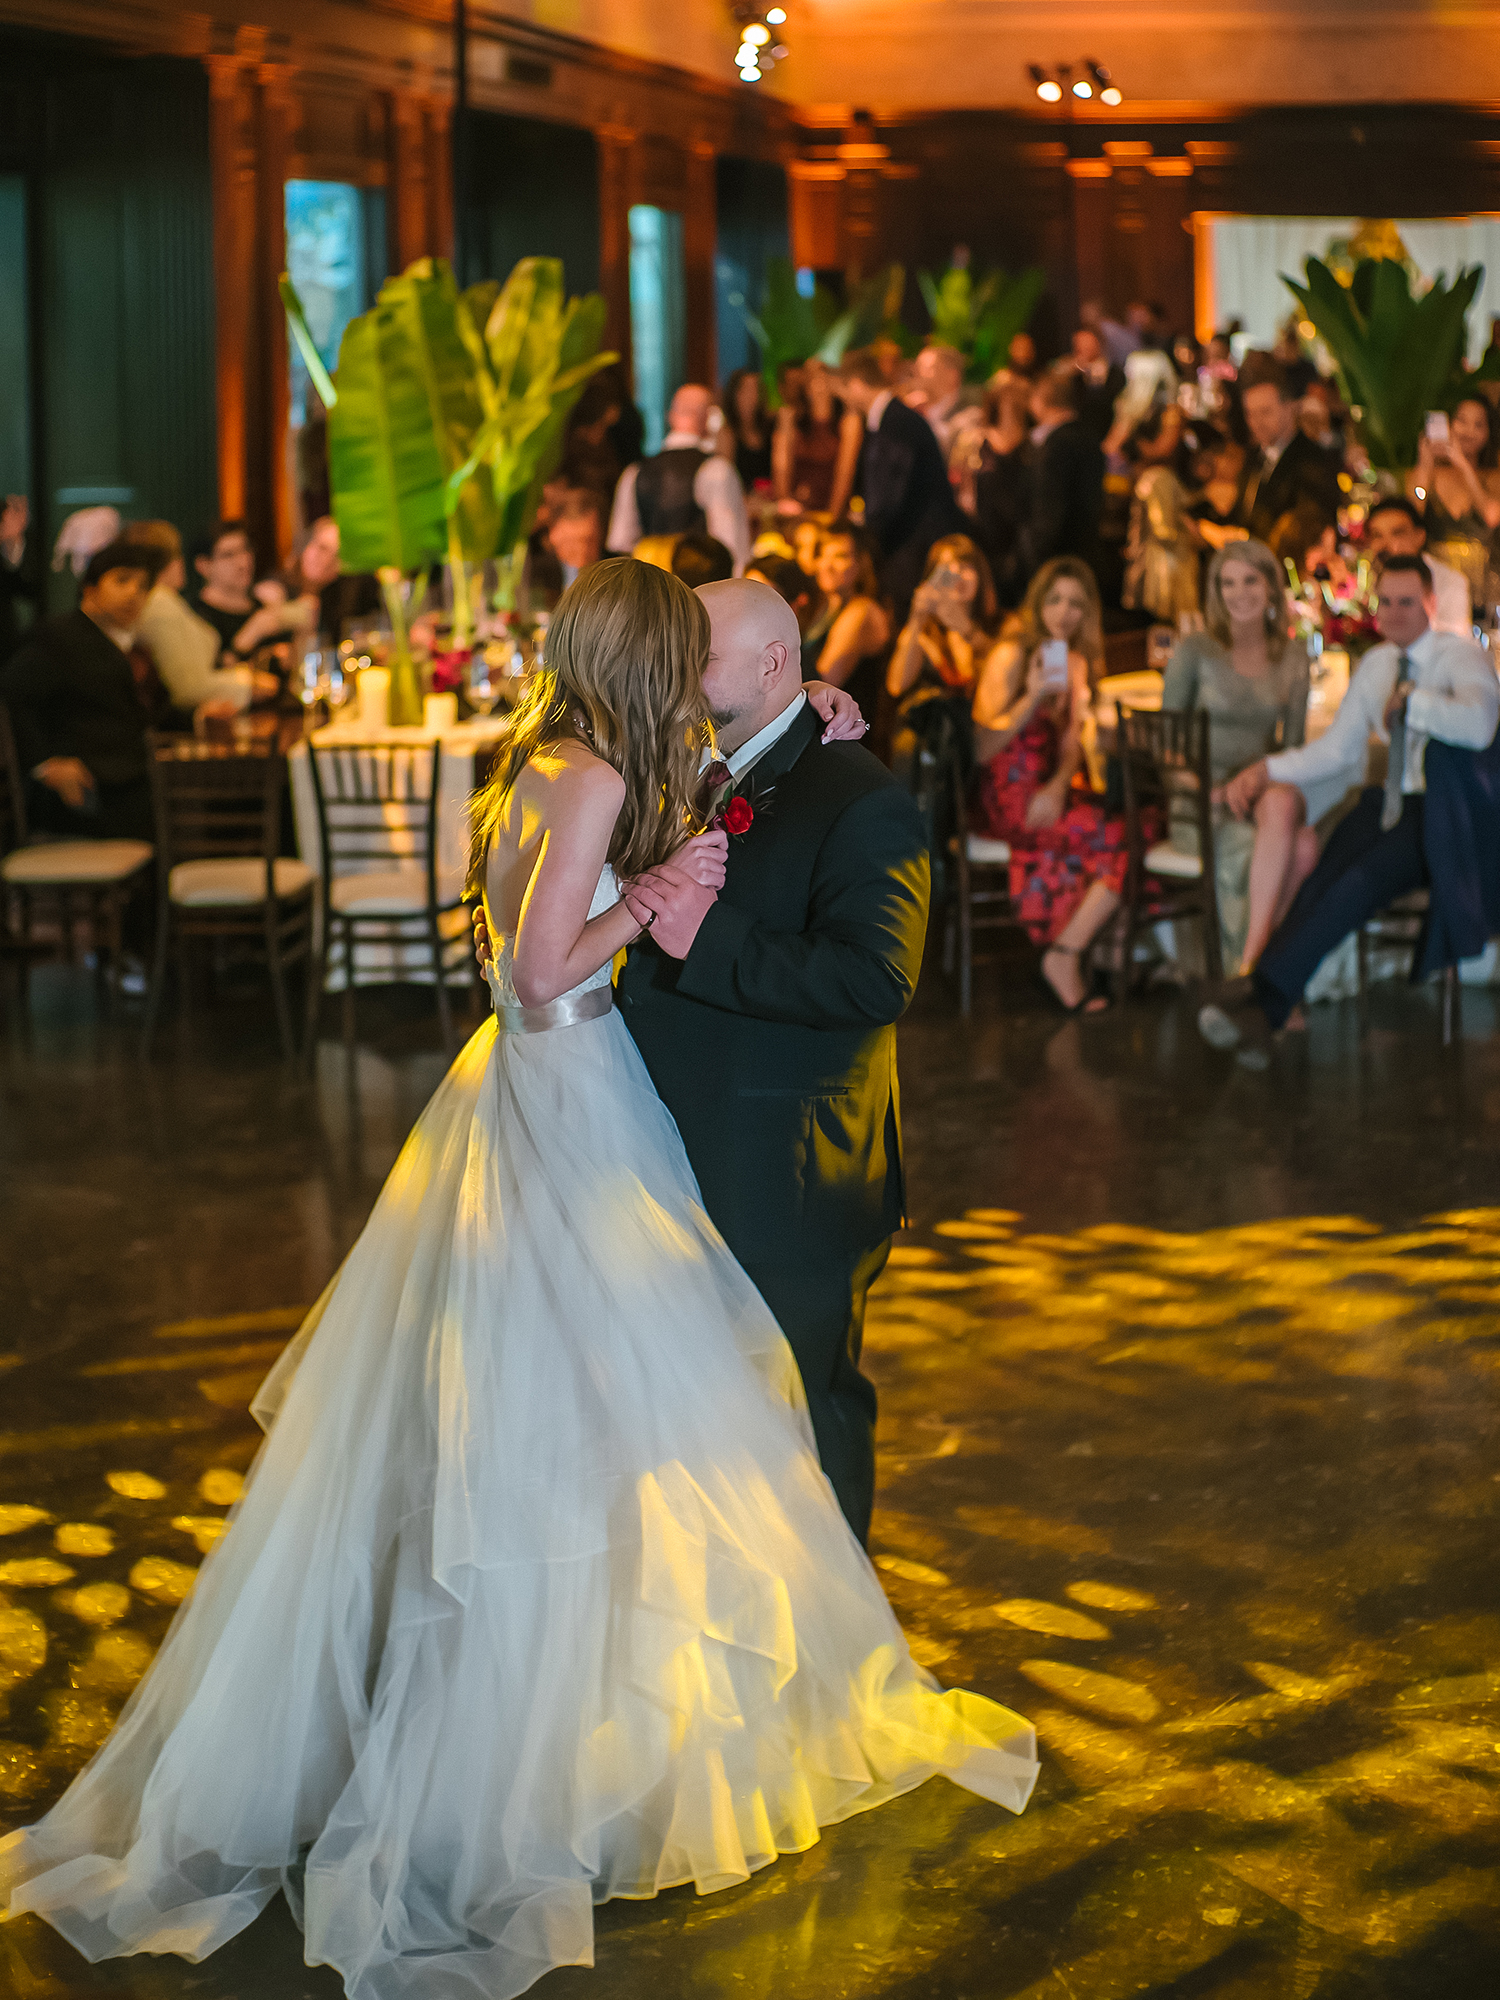 duff goldman johnna colbry first dance